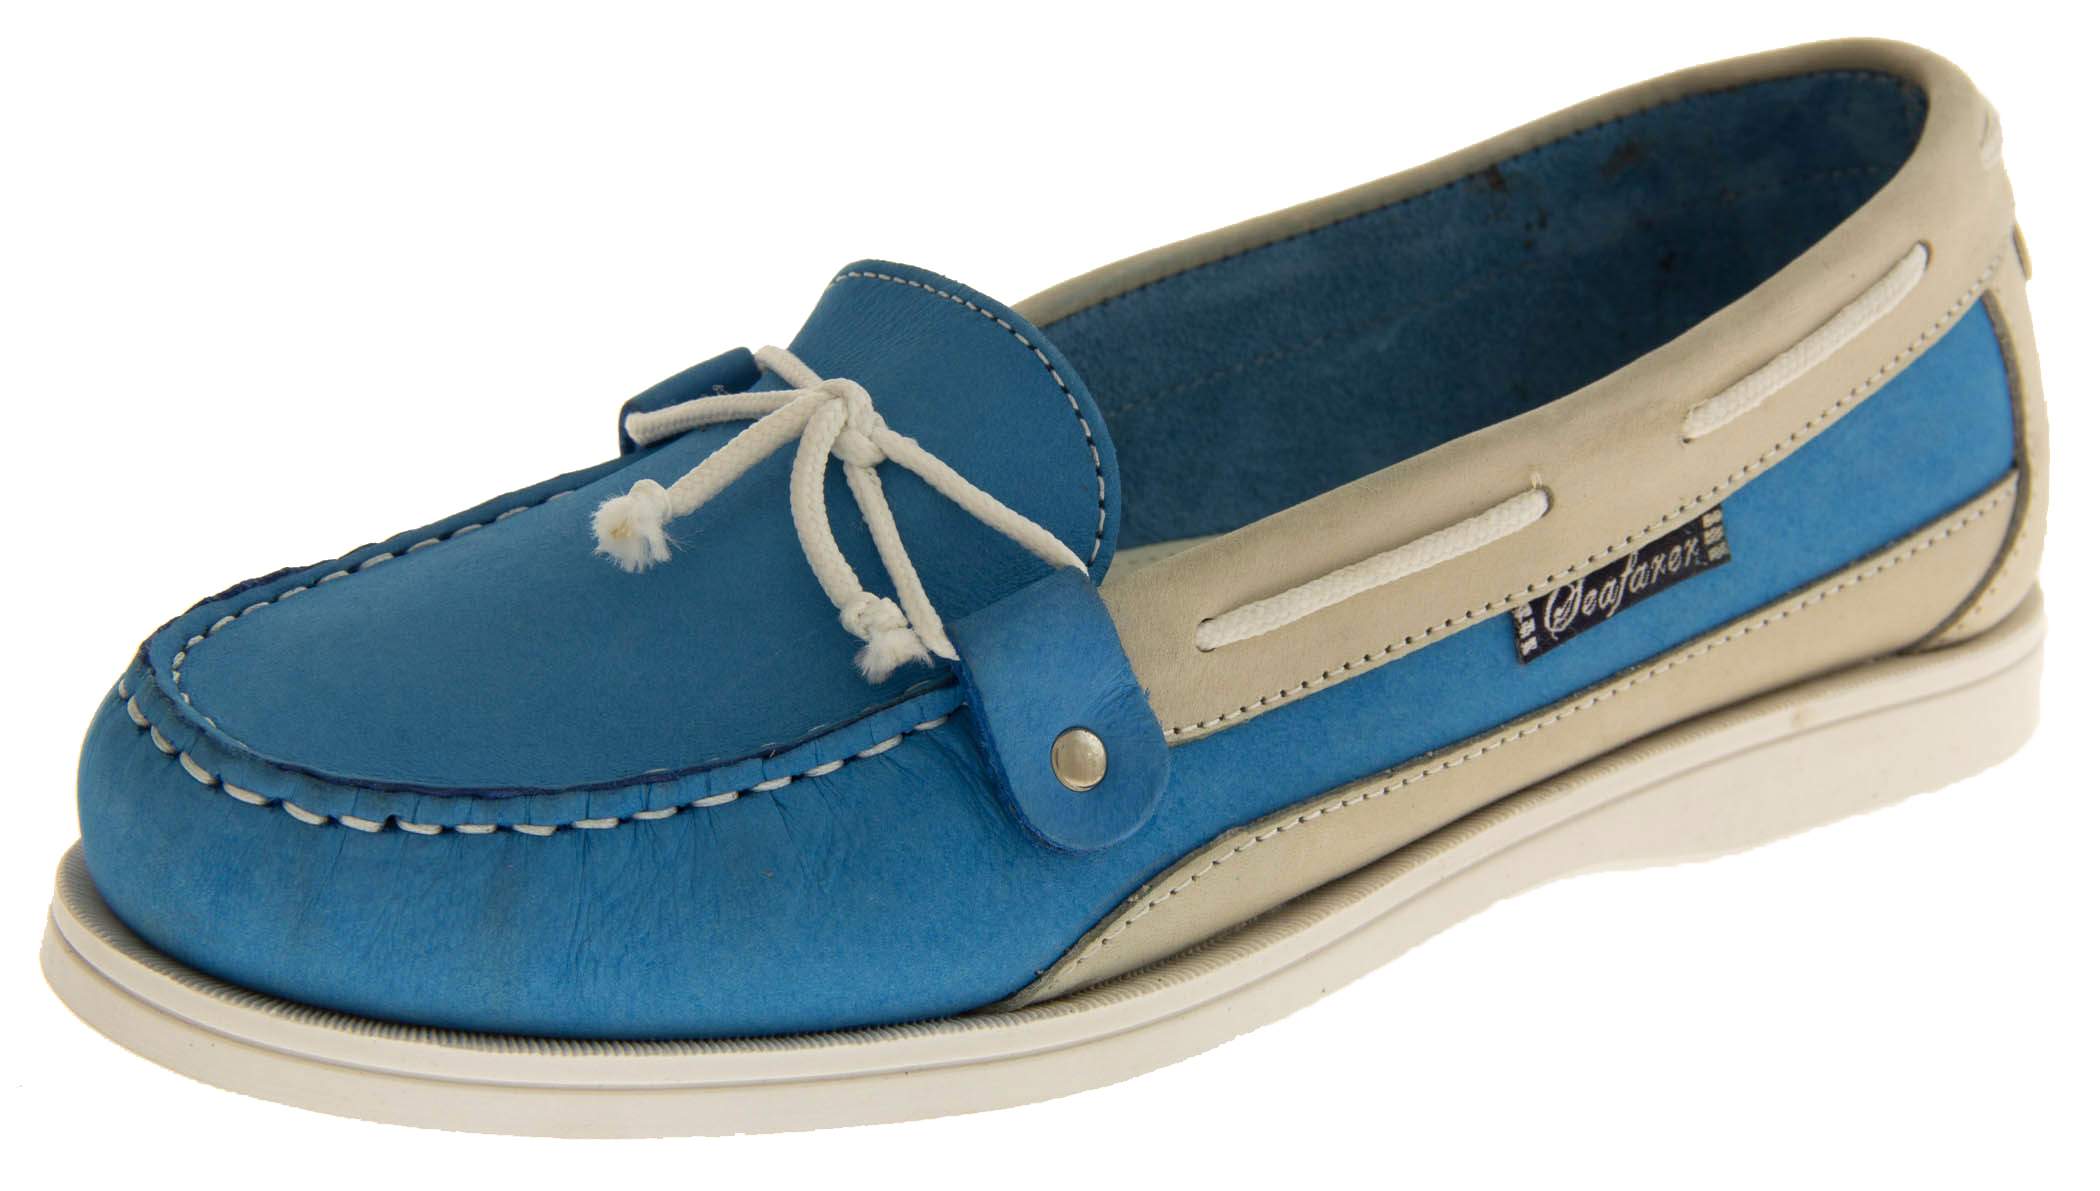 The Best Deck Shoes For Sailing